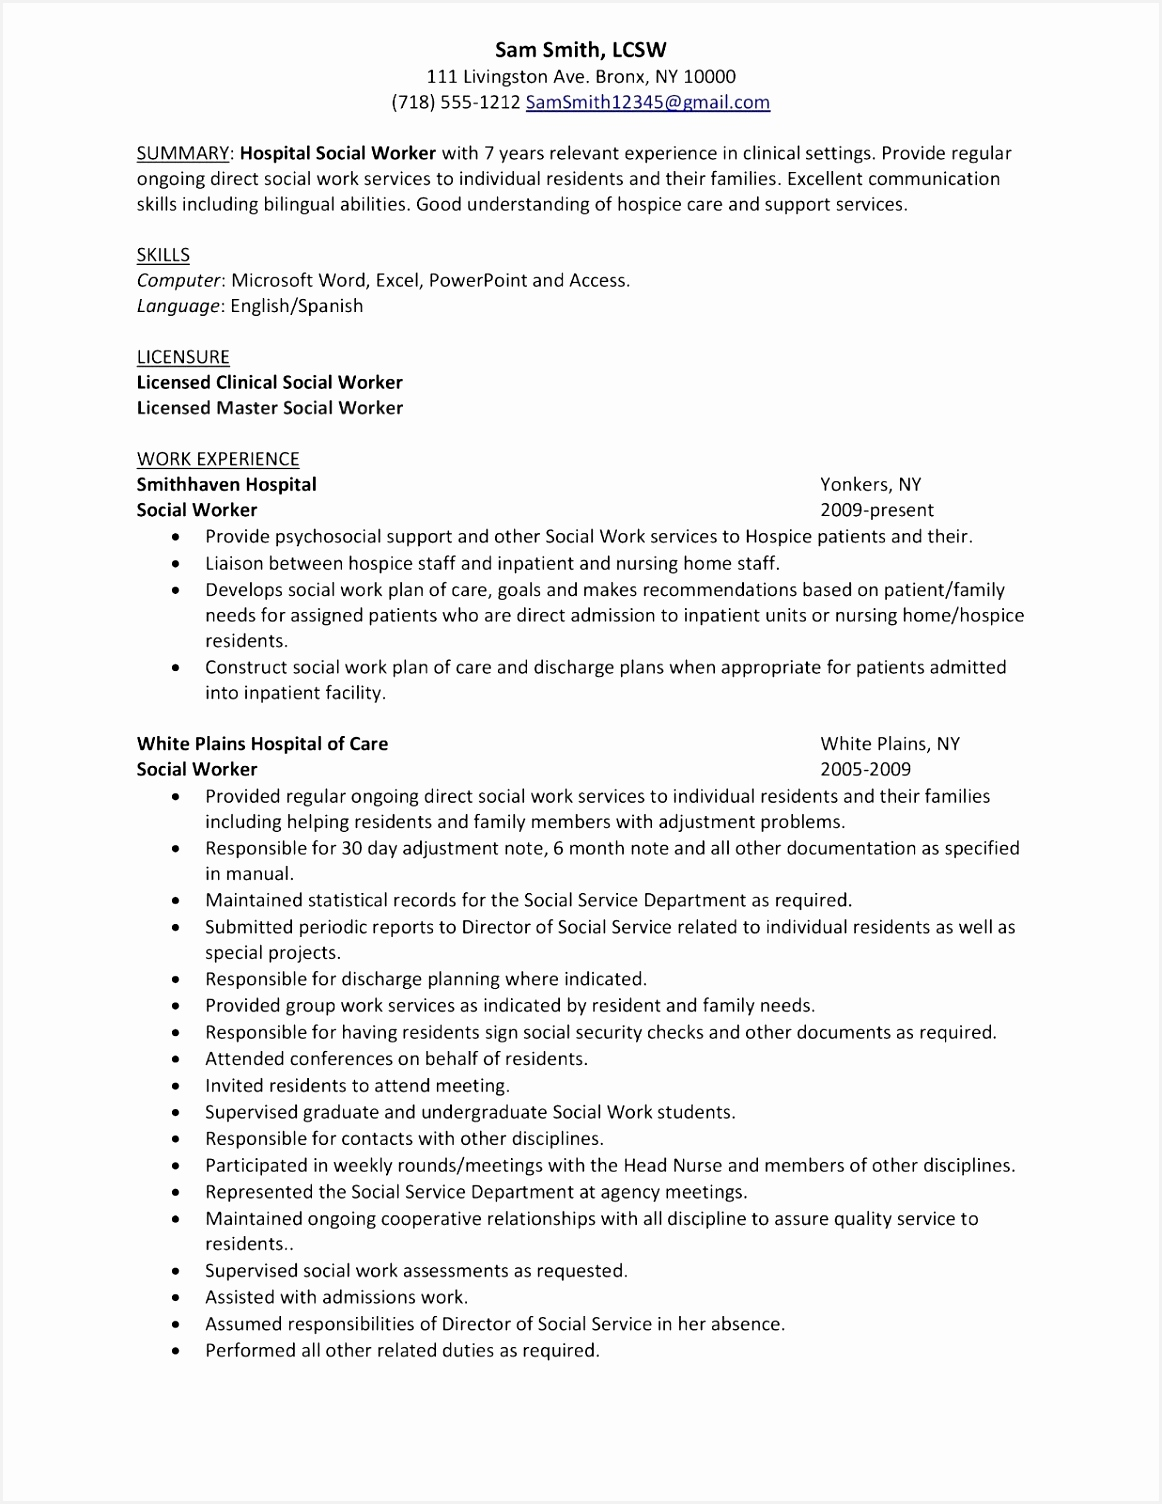 Relief Worker Sample Resume Ftaes Fresh social Services Resume Objectives – Resume Simple Templates15041162